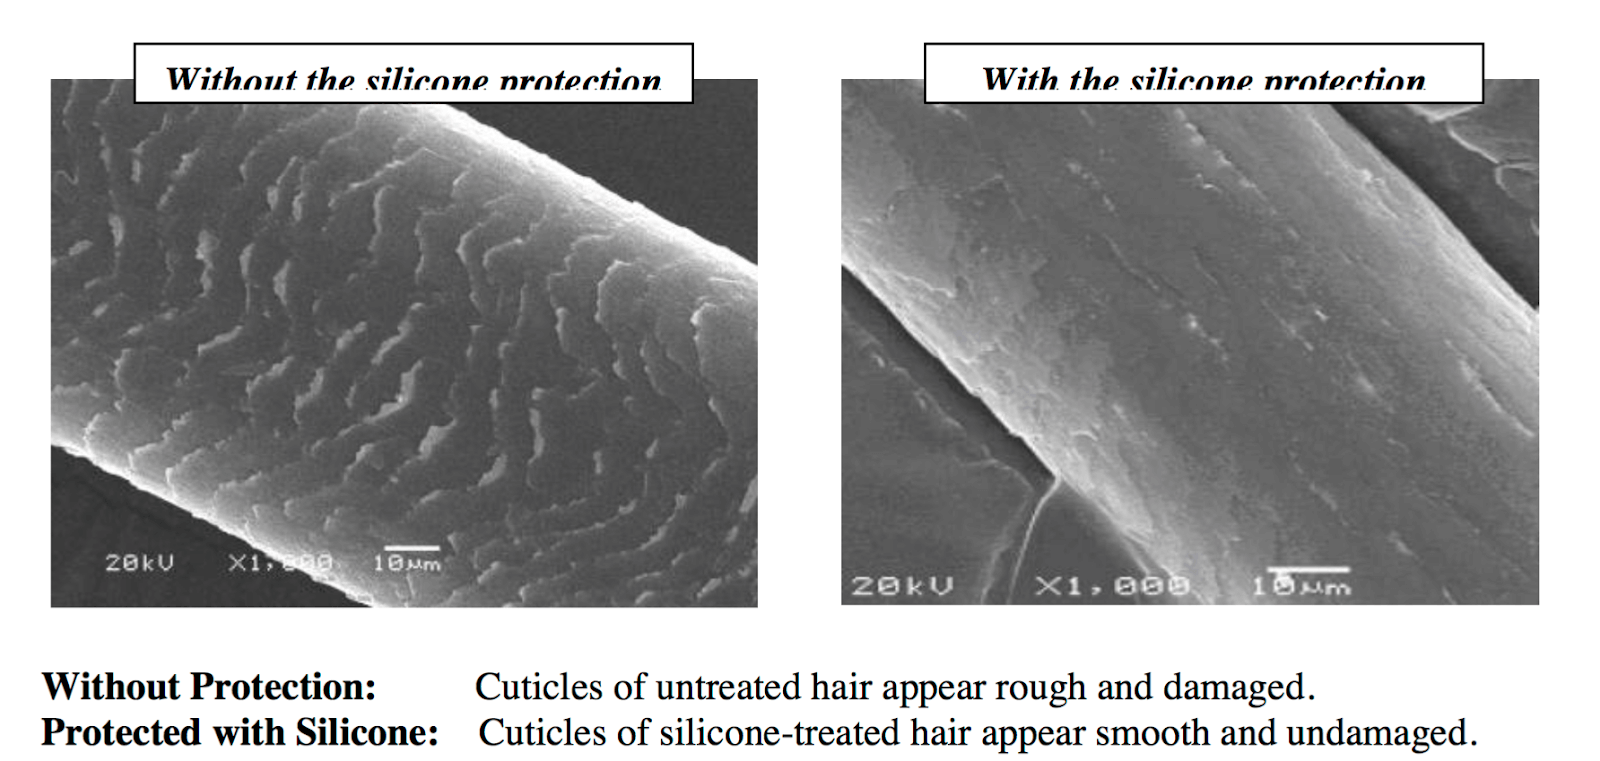 Hair shaft with and without silicone hair care products.